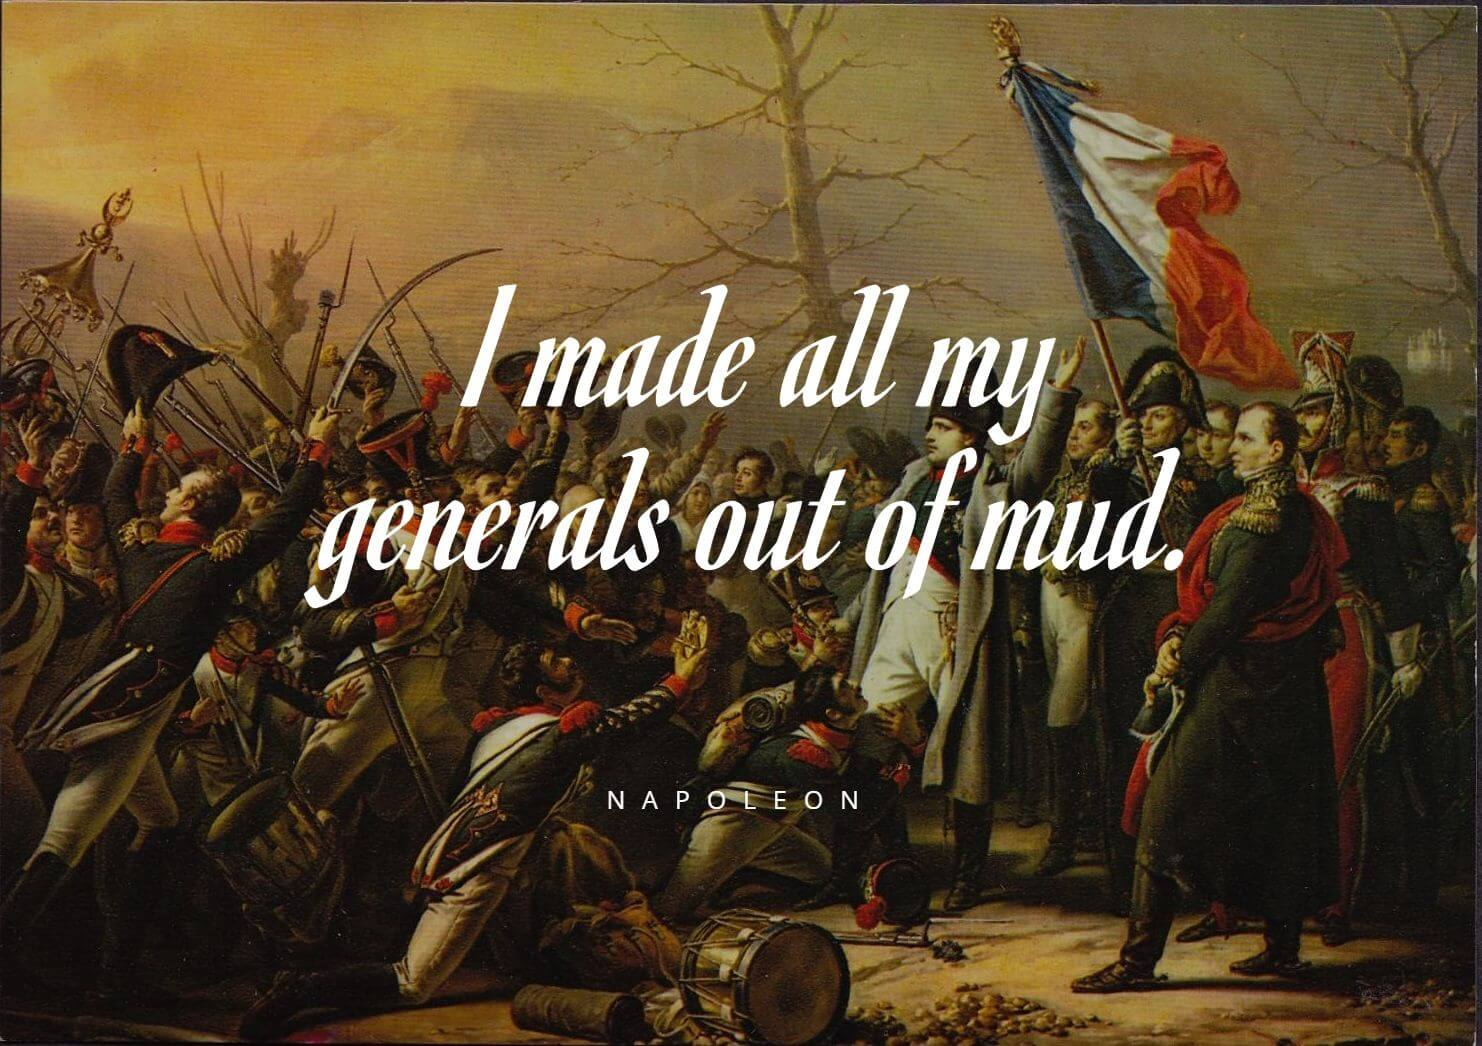 Napoleon Bonaparte quotes I made all my generals out of mud